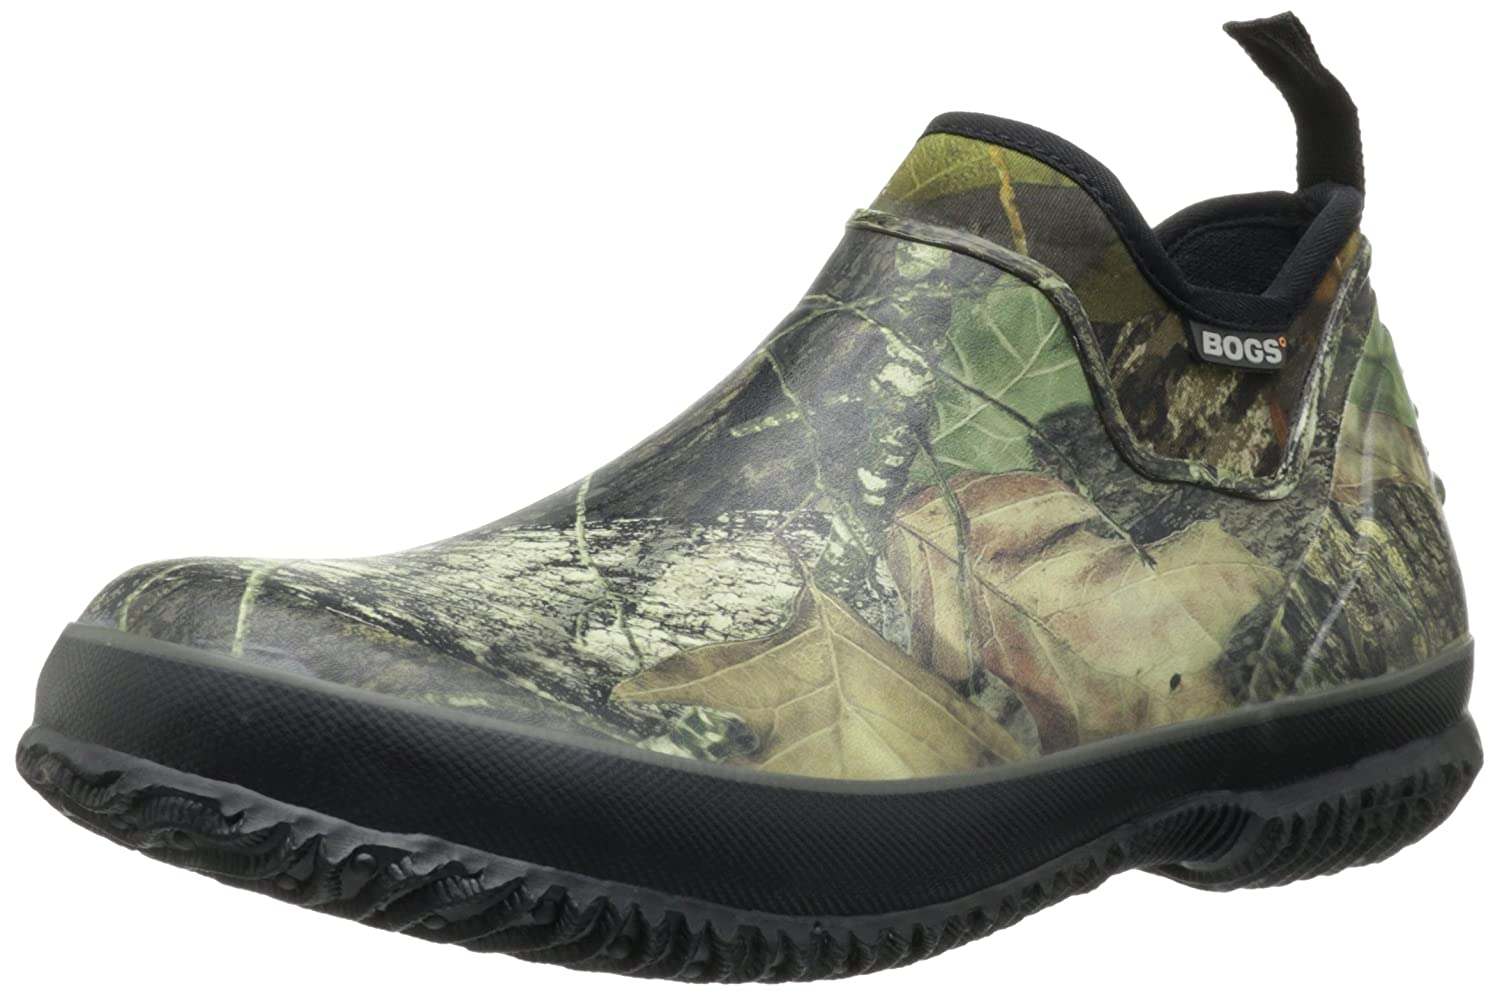 Bogs Men's Field Trekker Waterproof Hunting Shoe